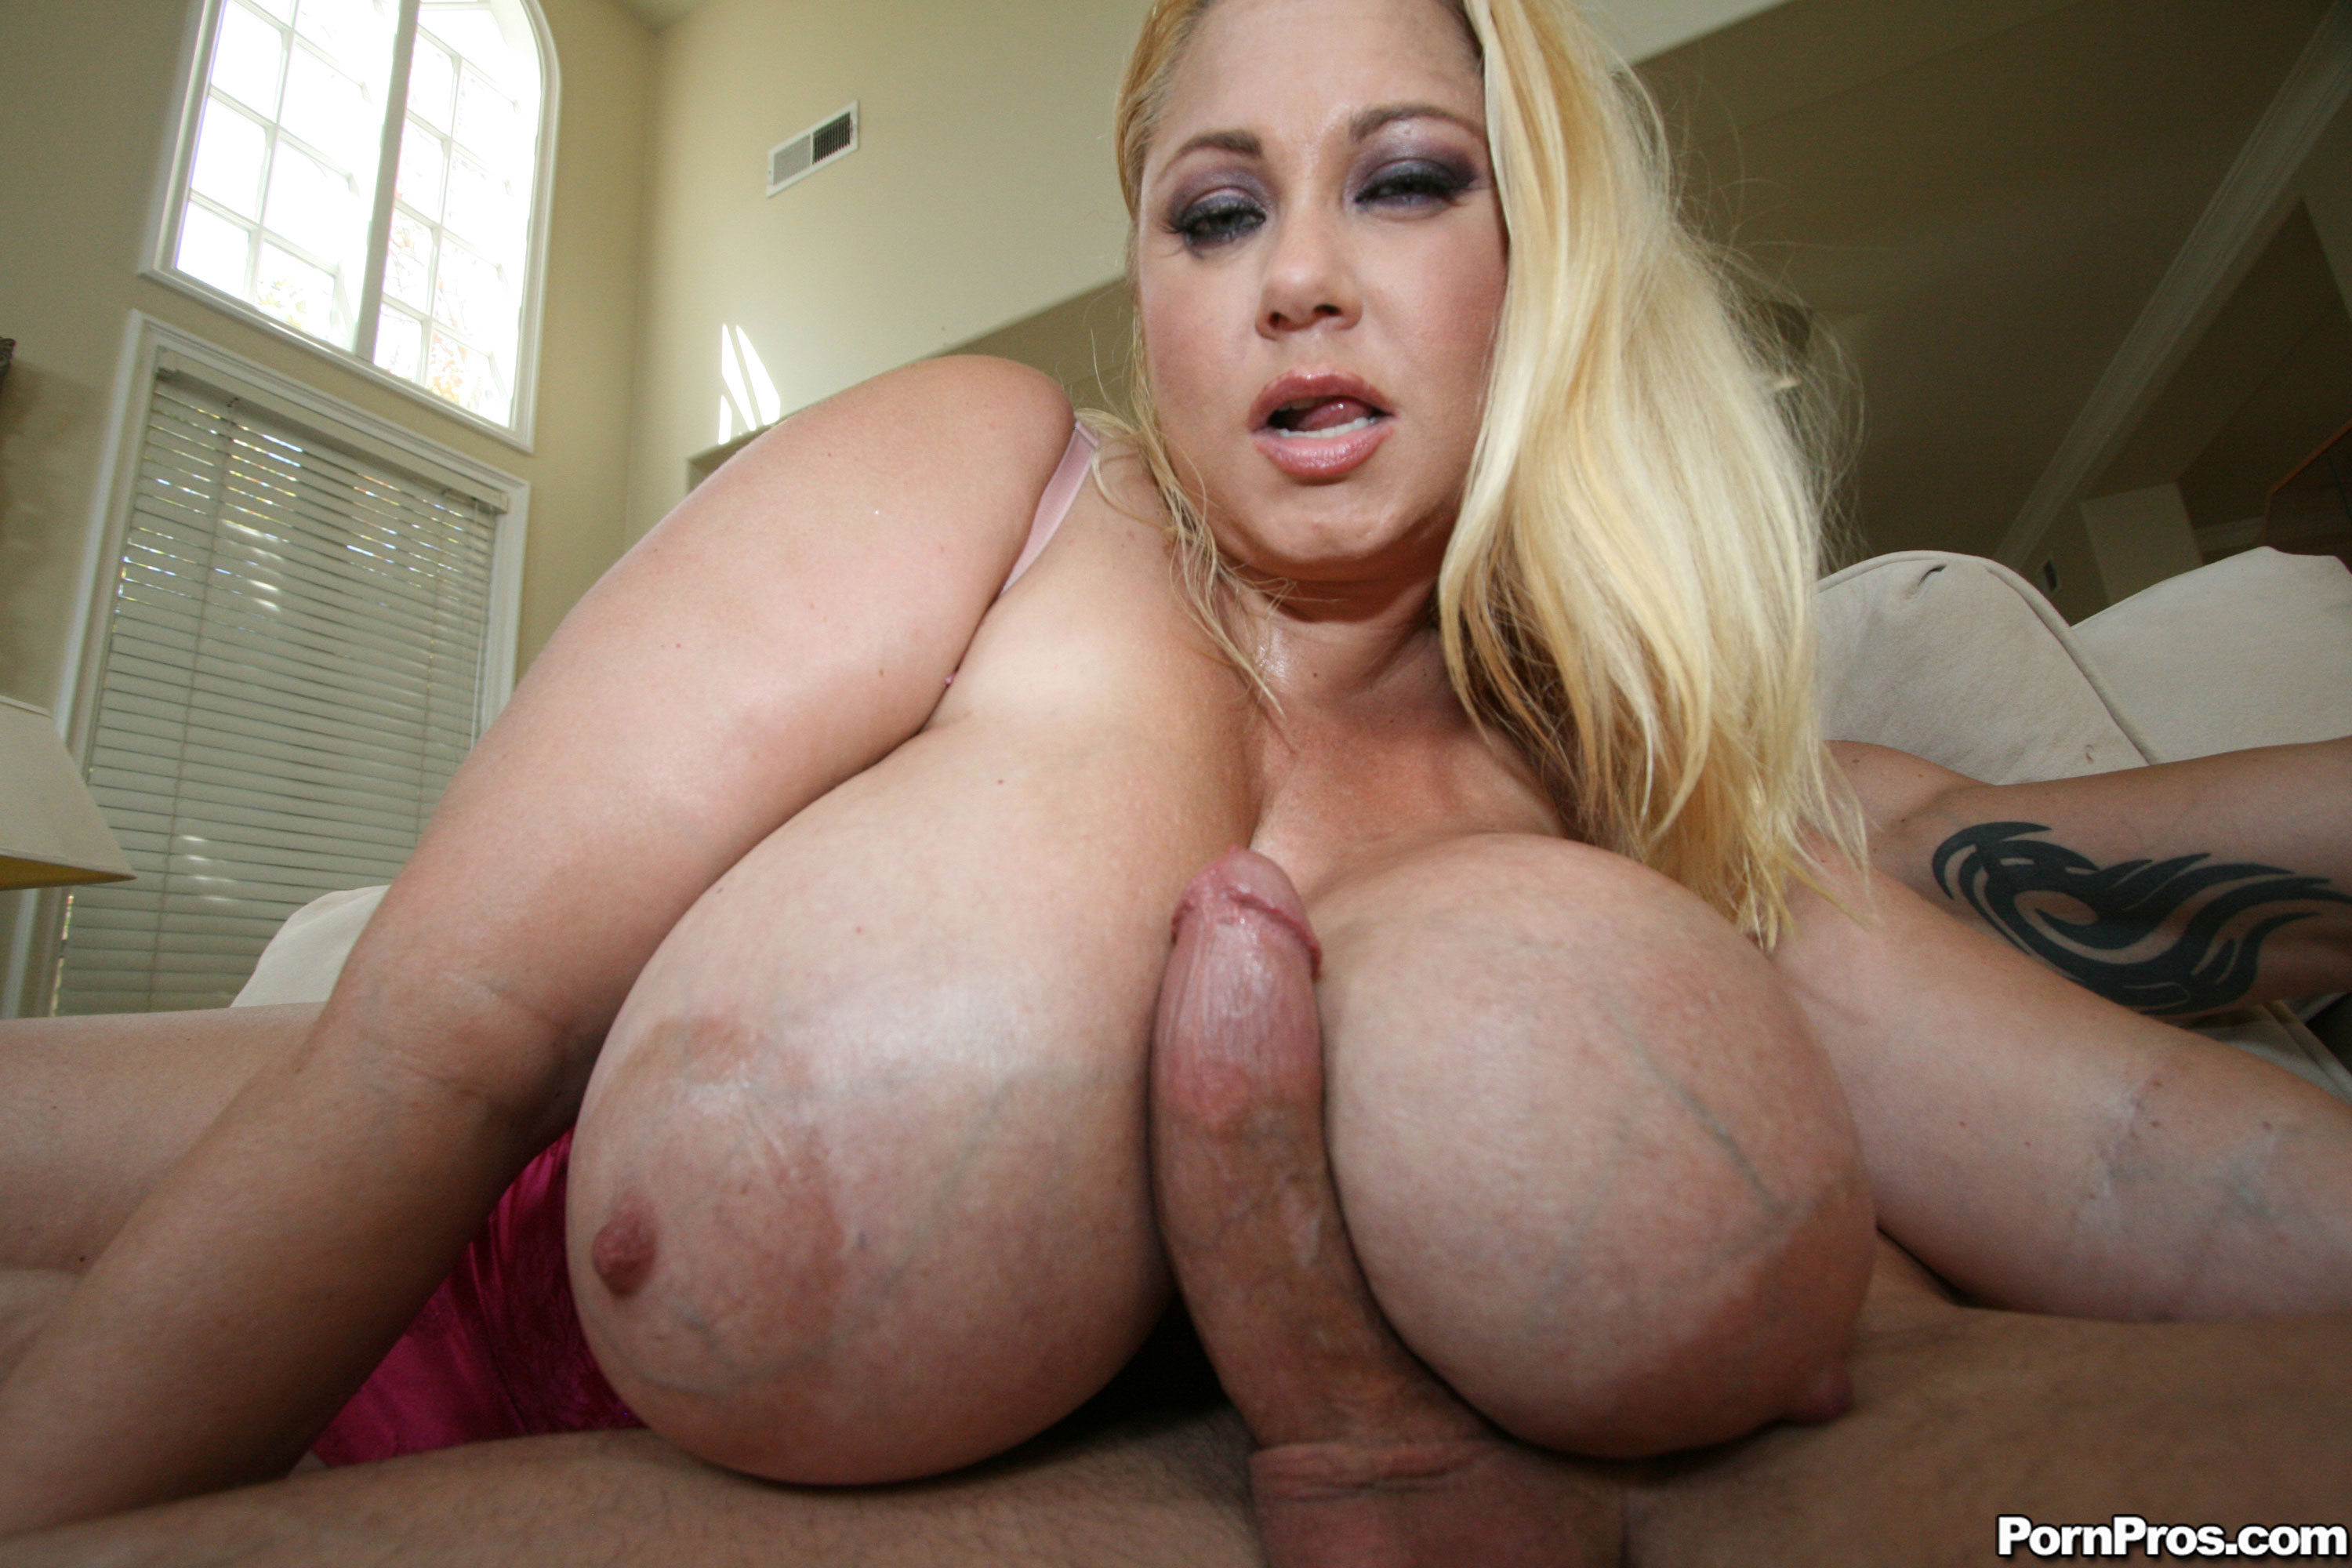 Biggest titties ever porno